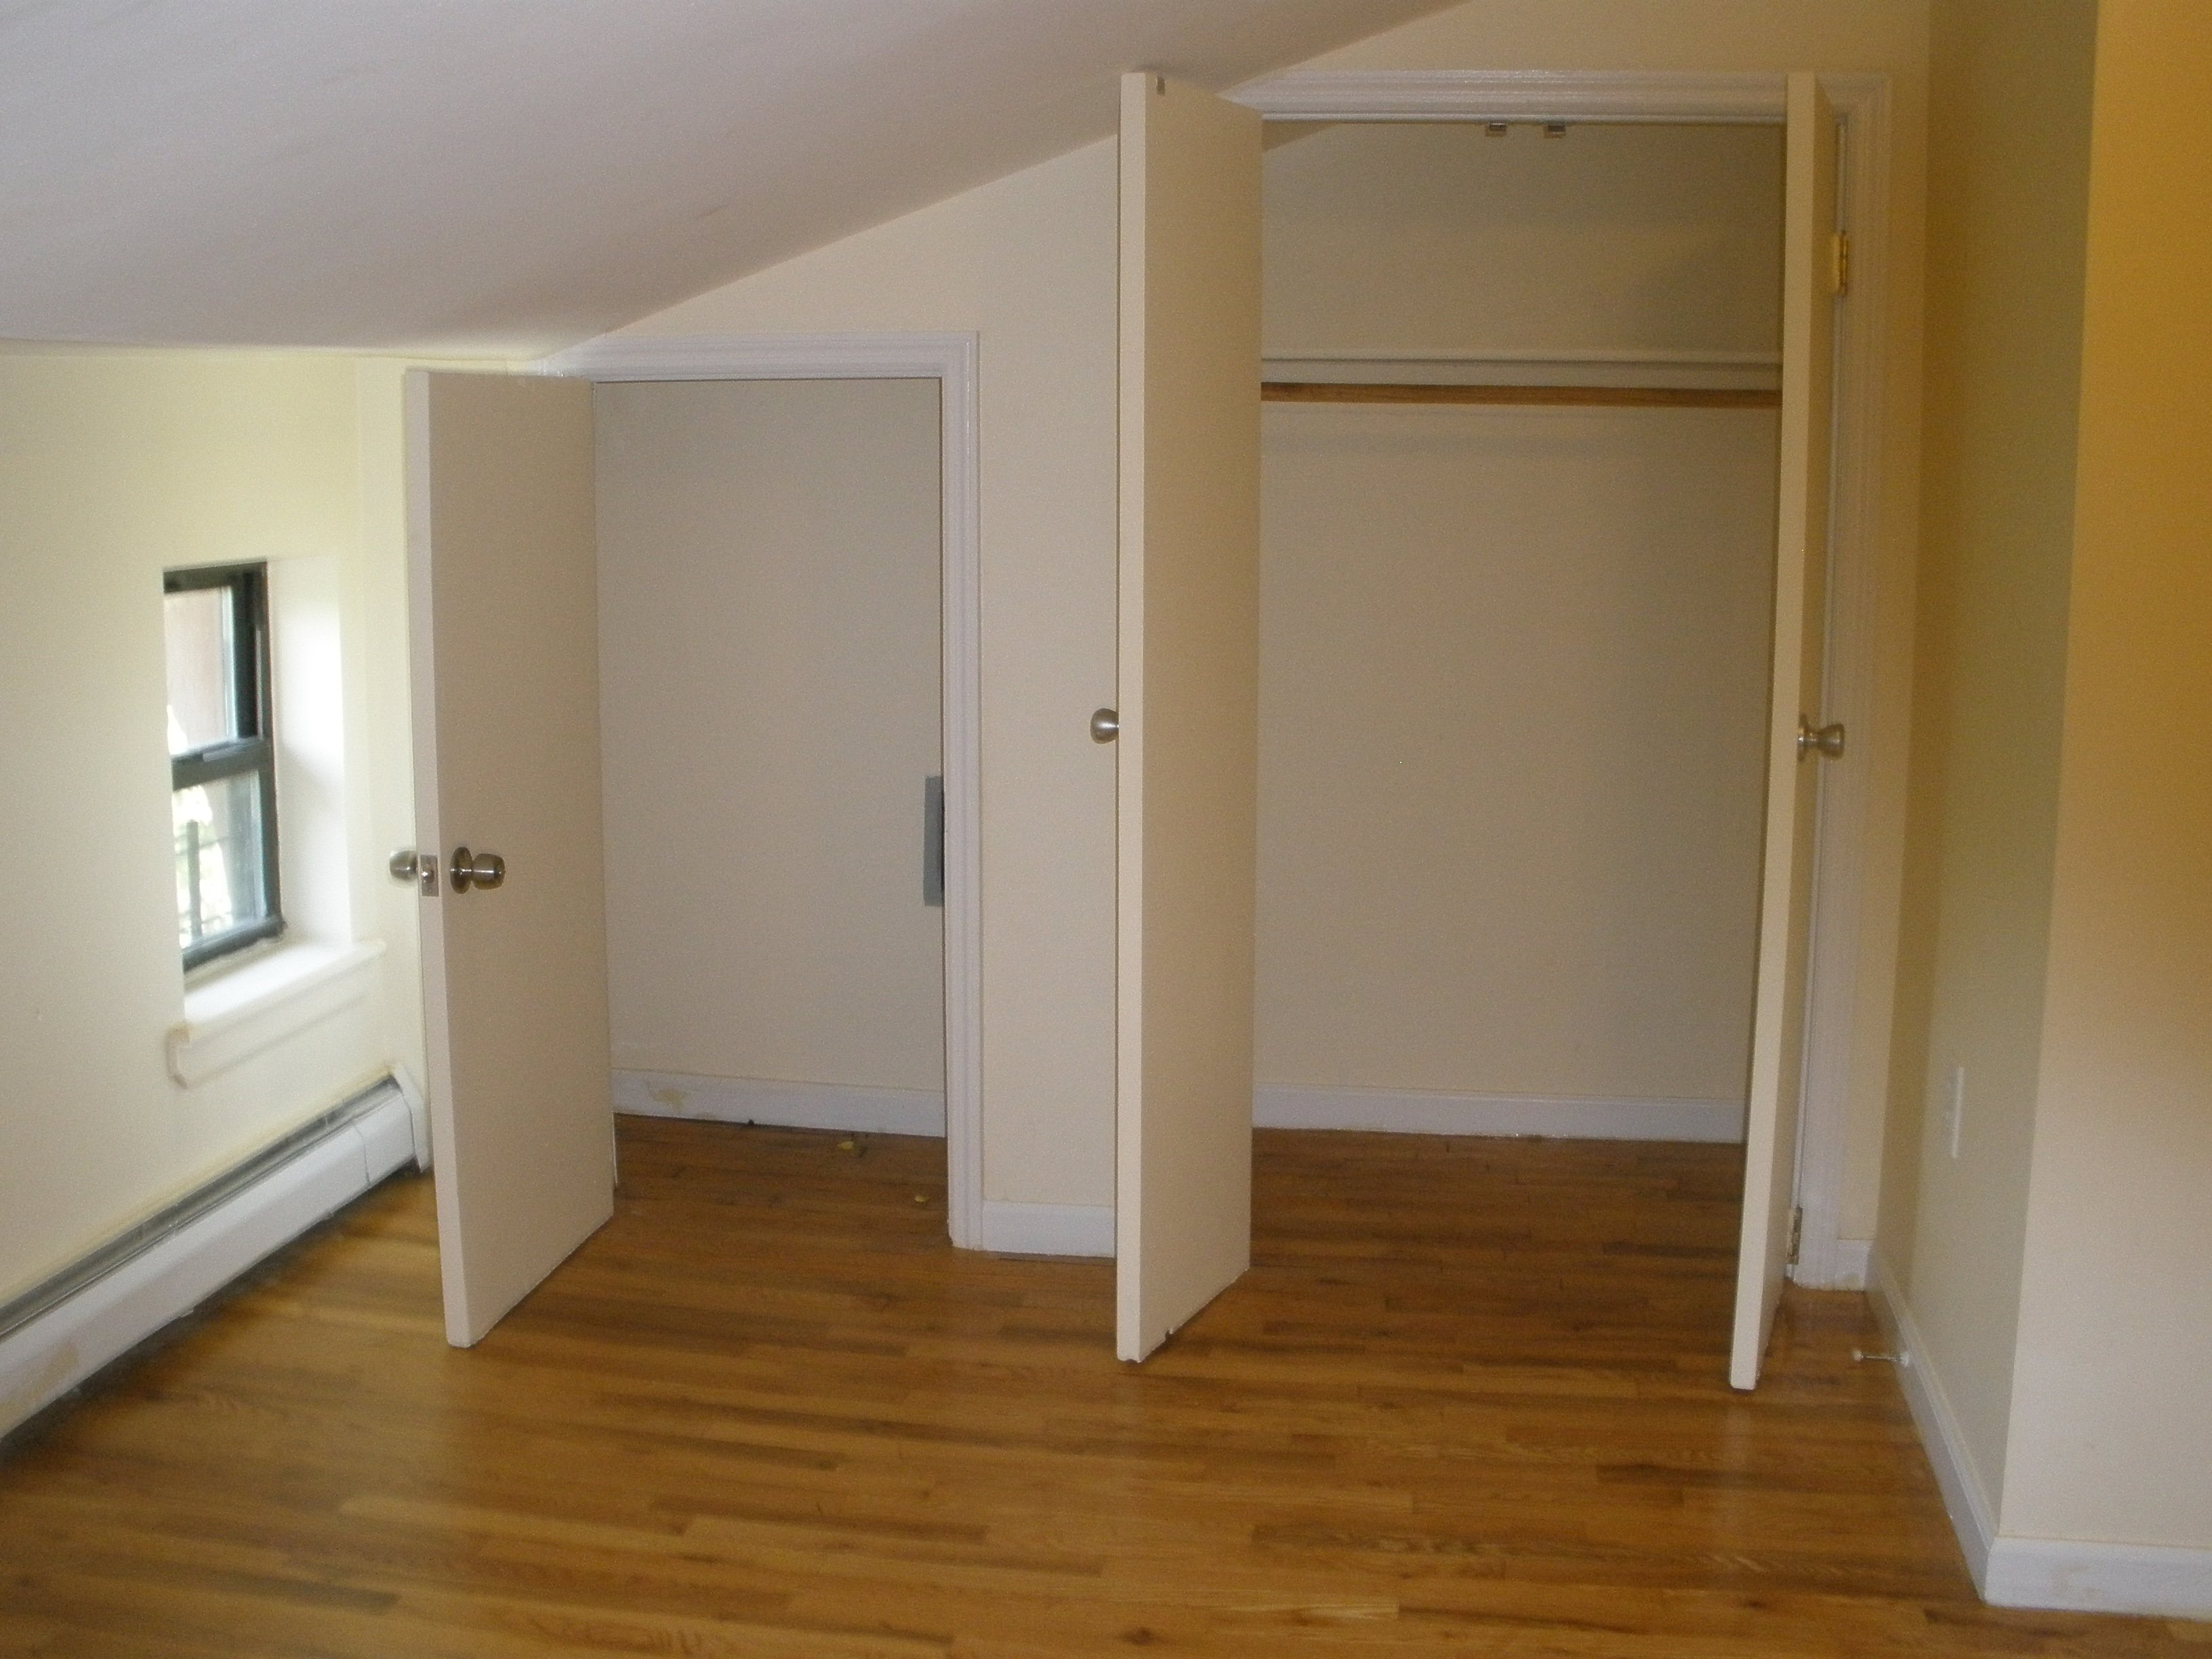 Best Bed Stuy 1 Bedroom Apartment For Rent Brooklyn Crg3115 With Pictures